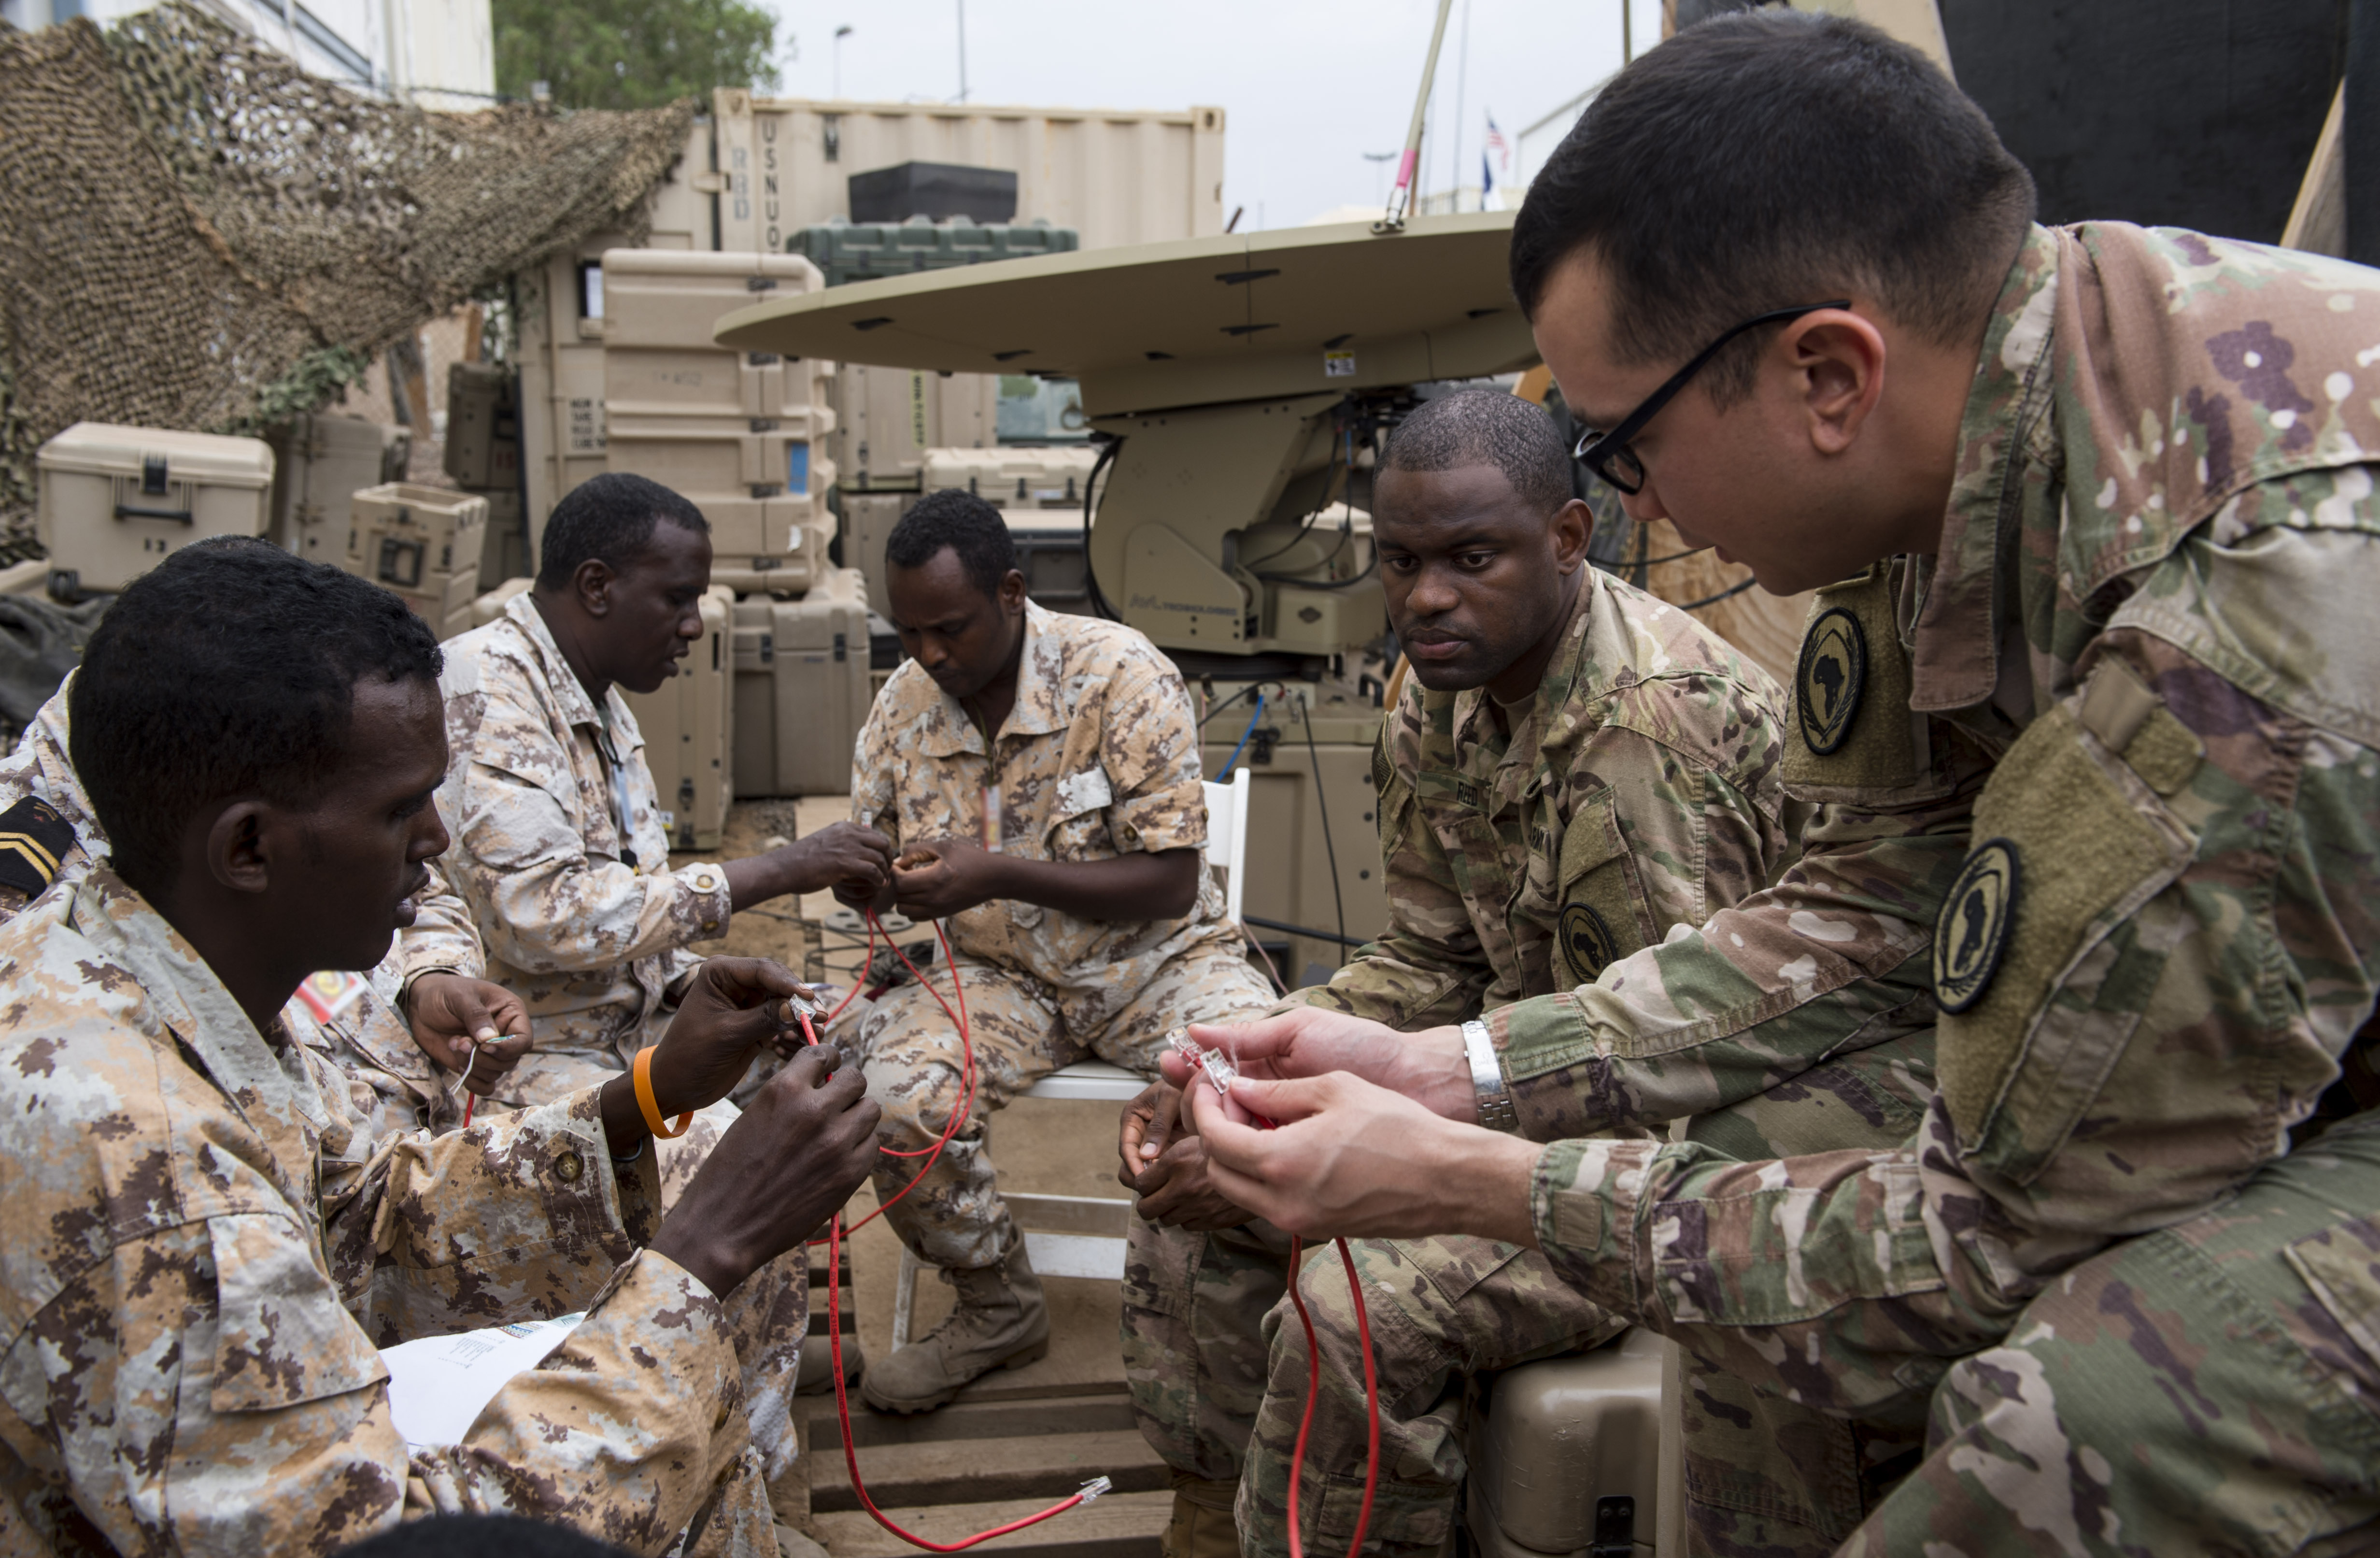 U.S. Army Spc. Matthew Jousselin, right, a multisystem transmission operator and maintainer assigned to the Combined Joint Task Force - Horn of Africa (CJTF-HOA) Communications Directorate, explains how to arrange the wires in a cable to a Djibouti Armed Forces (FAD) member during a military-to-military exchange course at Camp Lemonnier, Djibouti, Jan. 10, 2018. Throughout a two-week period, communications experts advised Djiboutian service members on how to set up, operate, maintain, and troubleshoot network equipment to increase communication capabilities between African Union Mission in Somalia forces. (U.S. Air Force photo illustration by Staff Sgt. Timothy Moore)